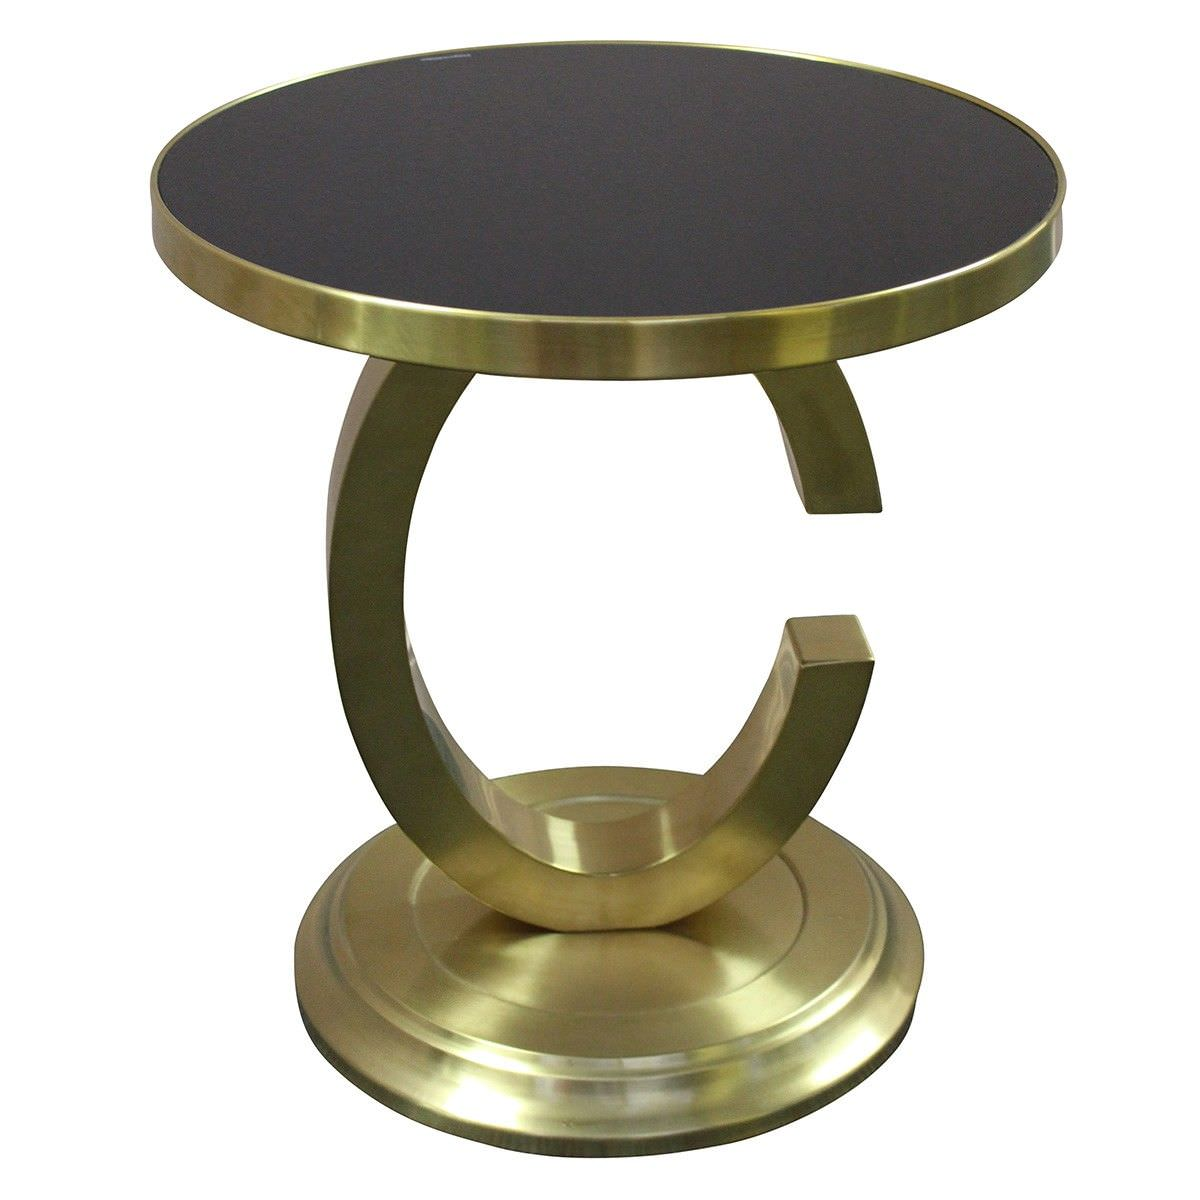 Chanel Glass Top Stainless Steel Side Table Brushed Gold Black - Brushed gold side table